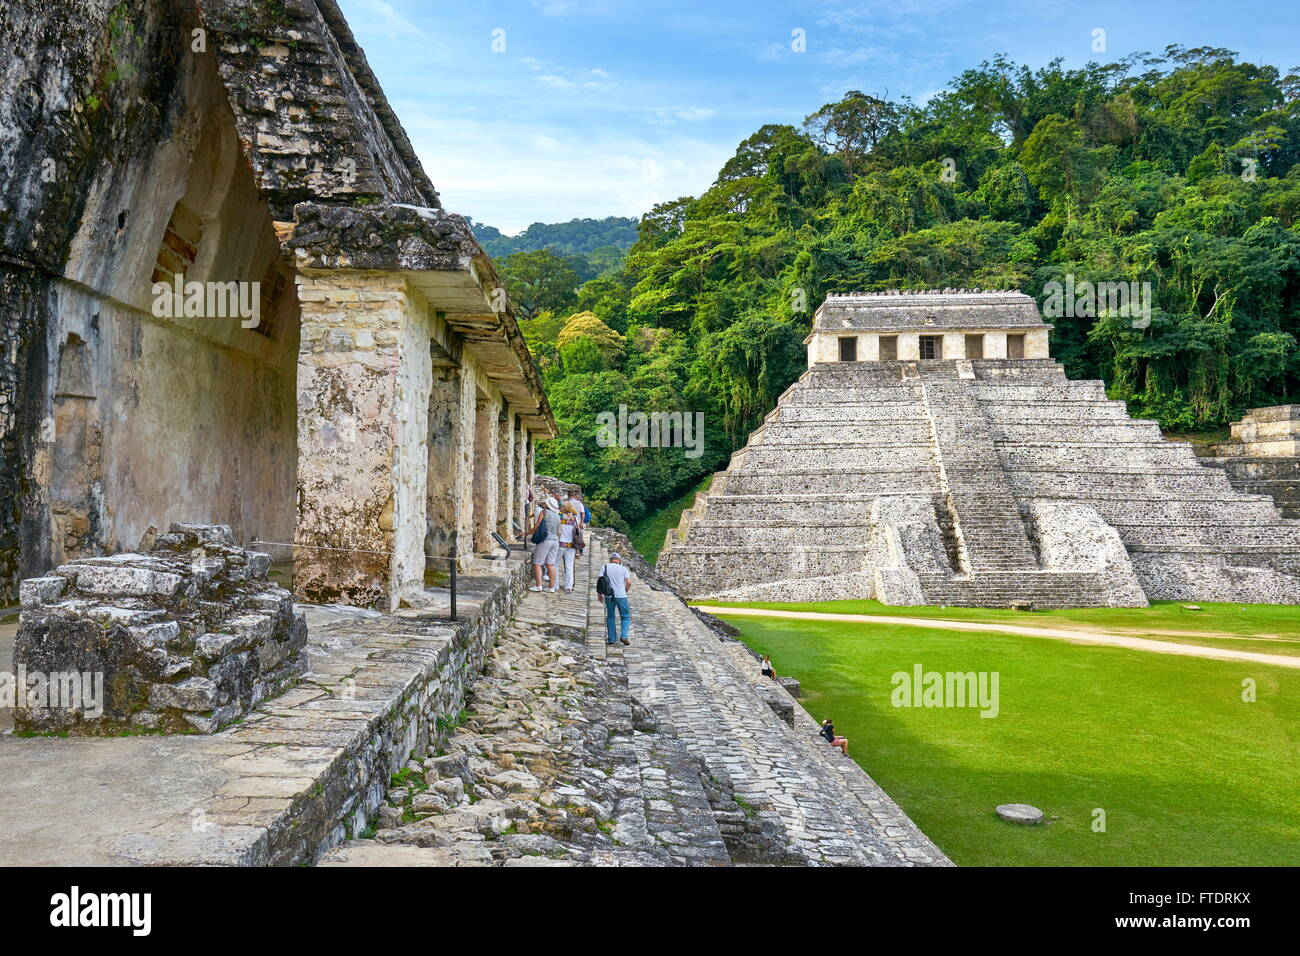 Temple of Inscriptions or Templo de Inscripciones, Ancient Maya Ruins, Palenque Archaeological Site, Palenque, Mexico, - Stock Image